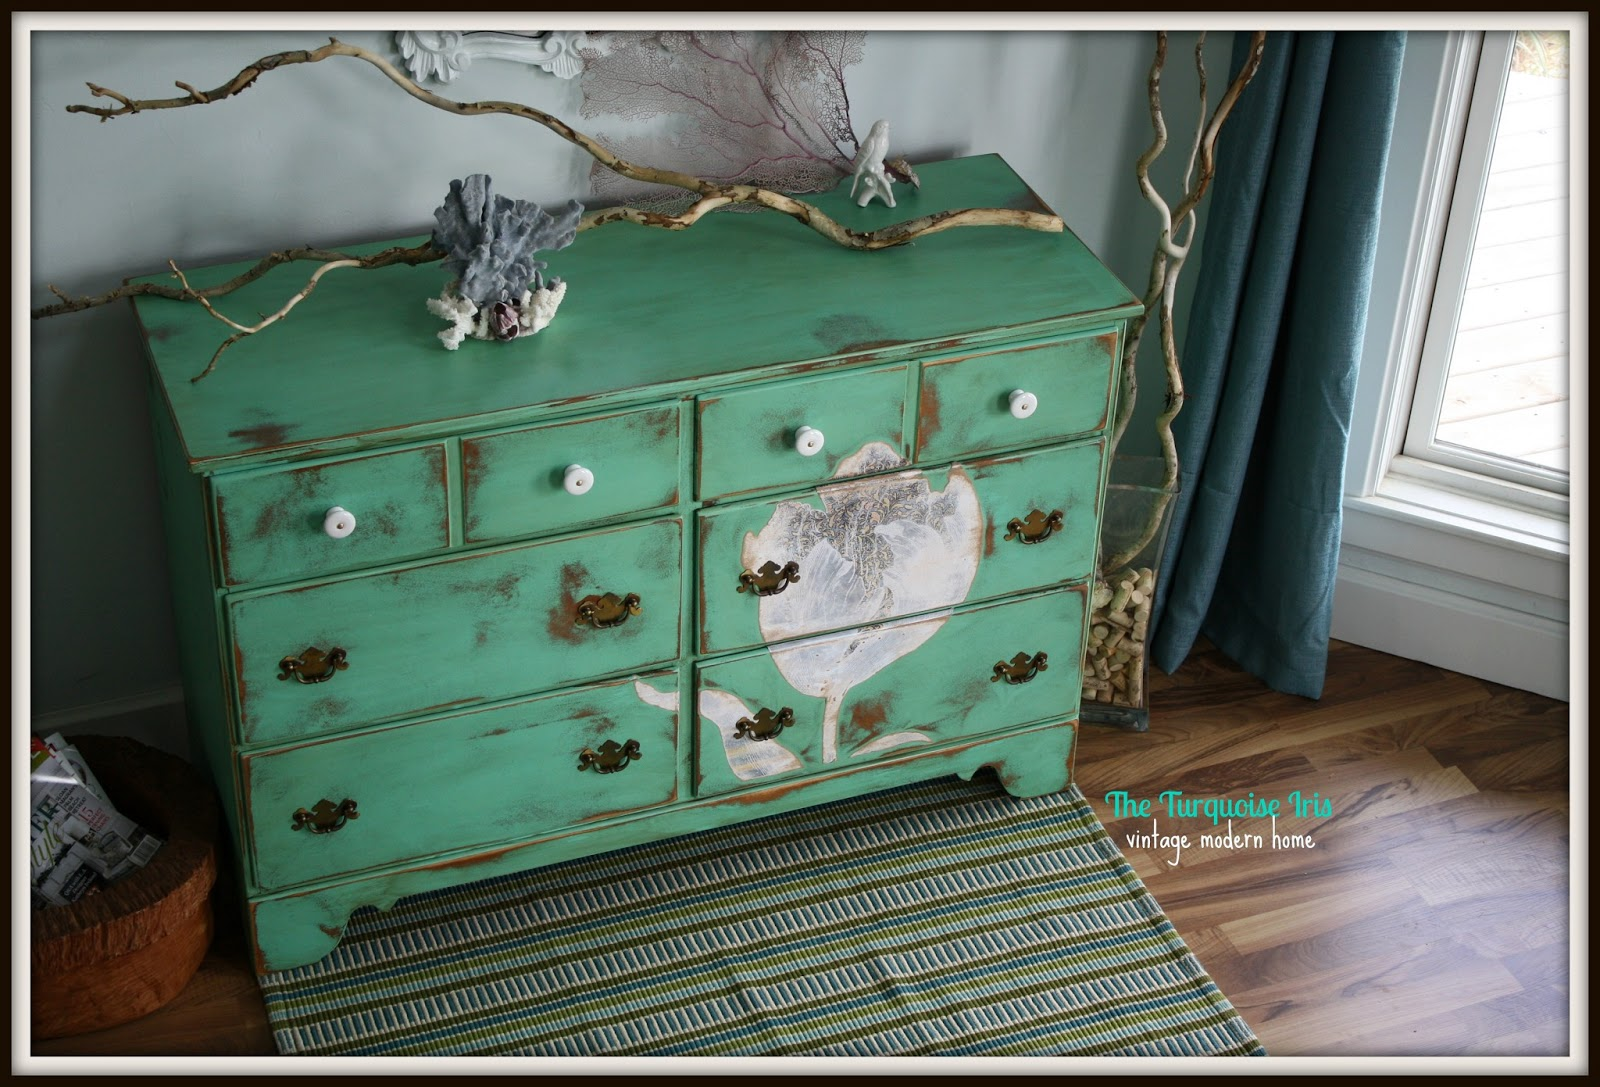 The Turquoise Iris Vintage Modern Hand Painted Furniture